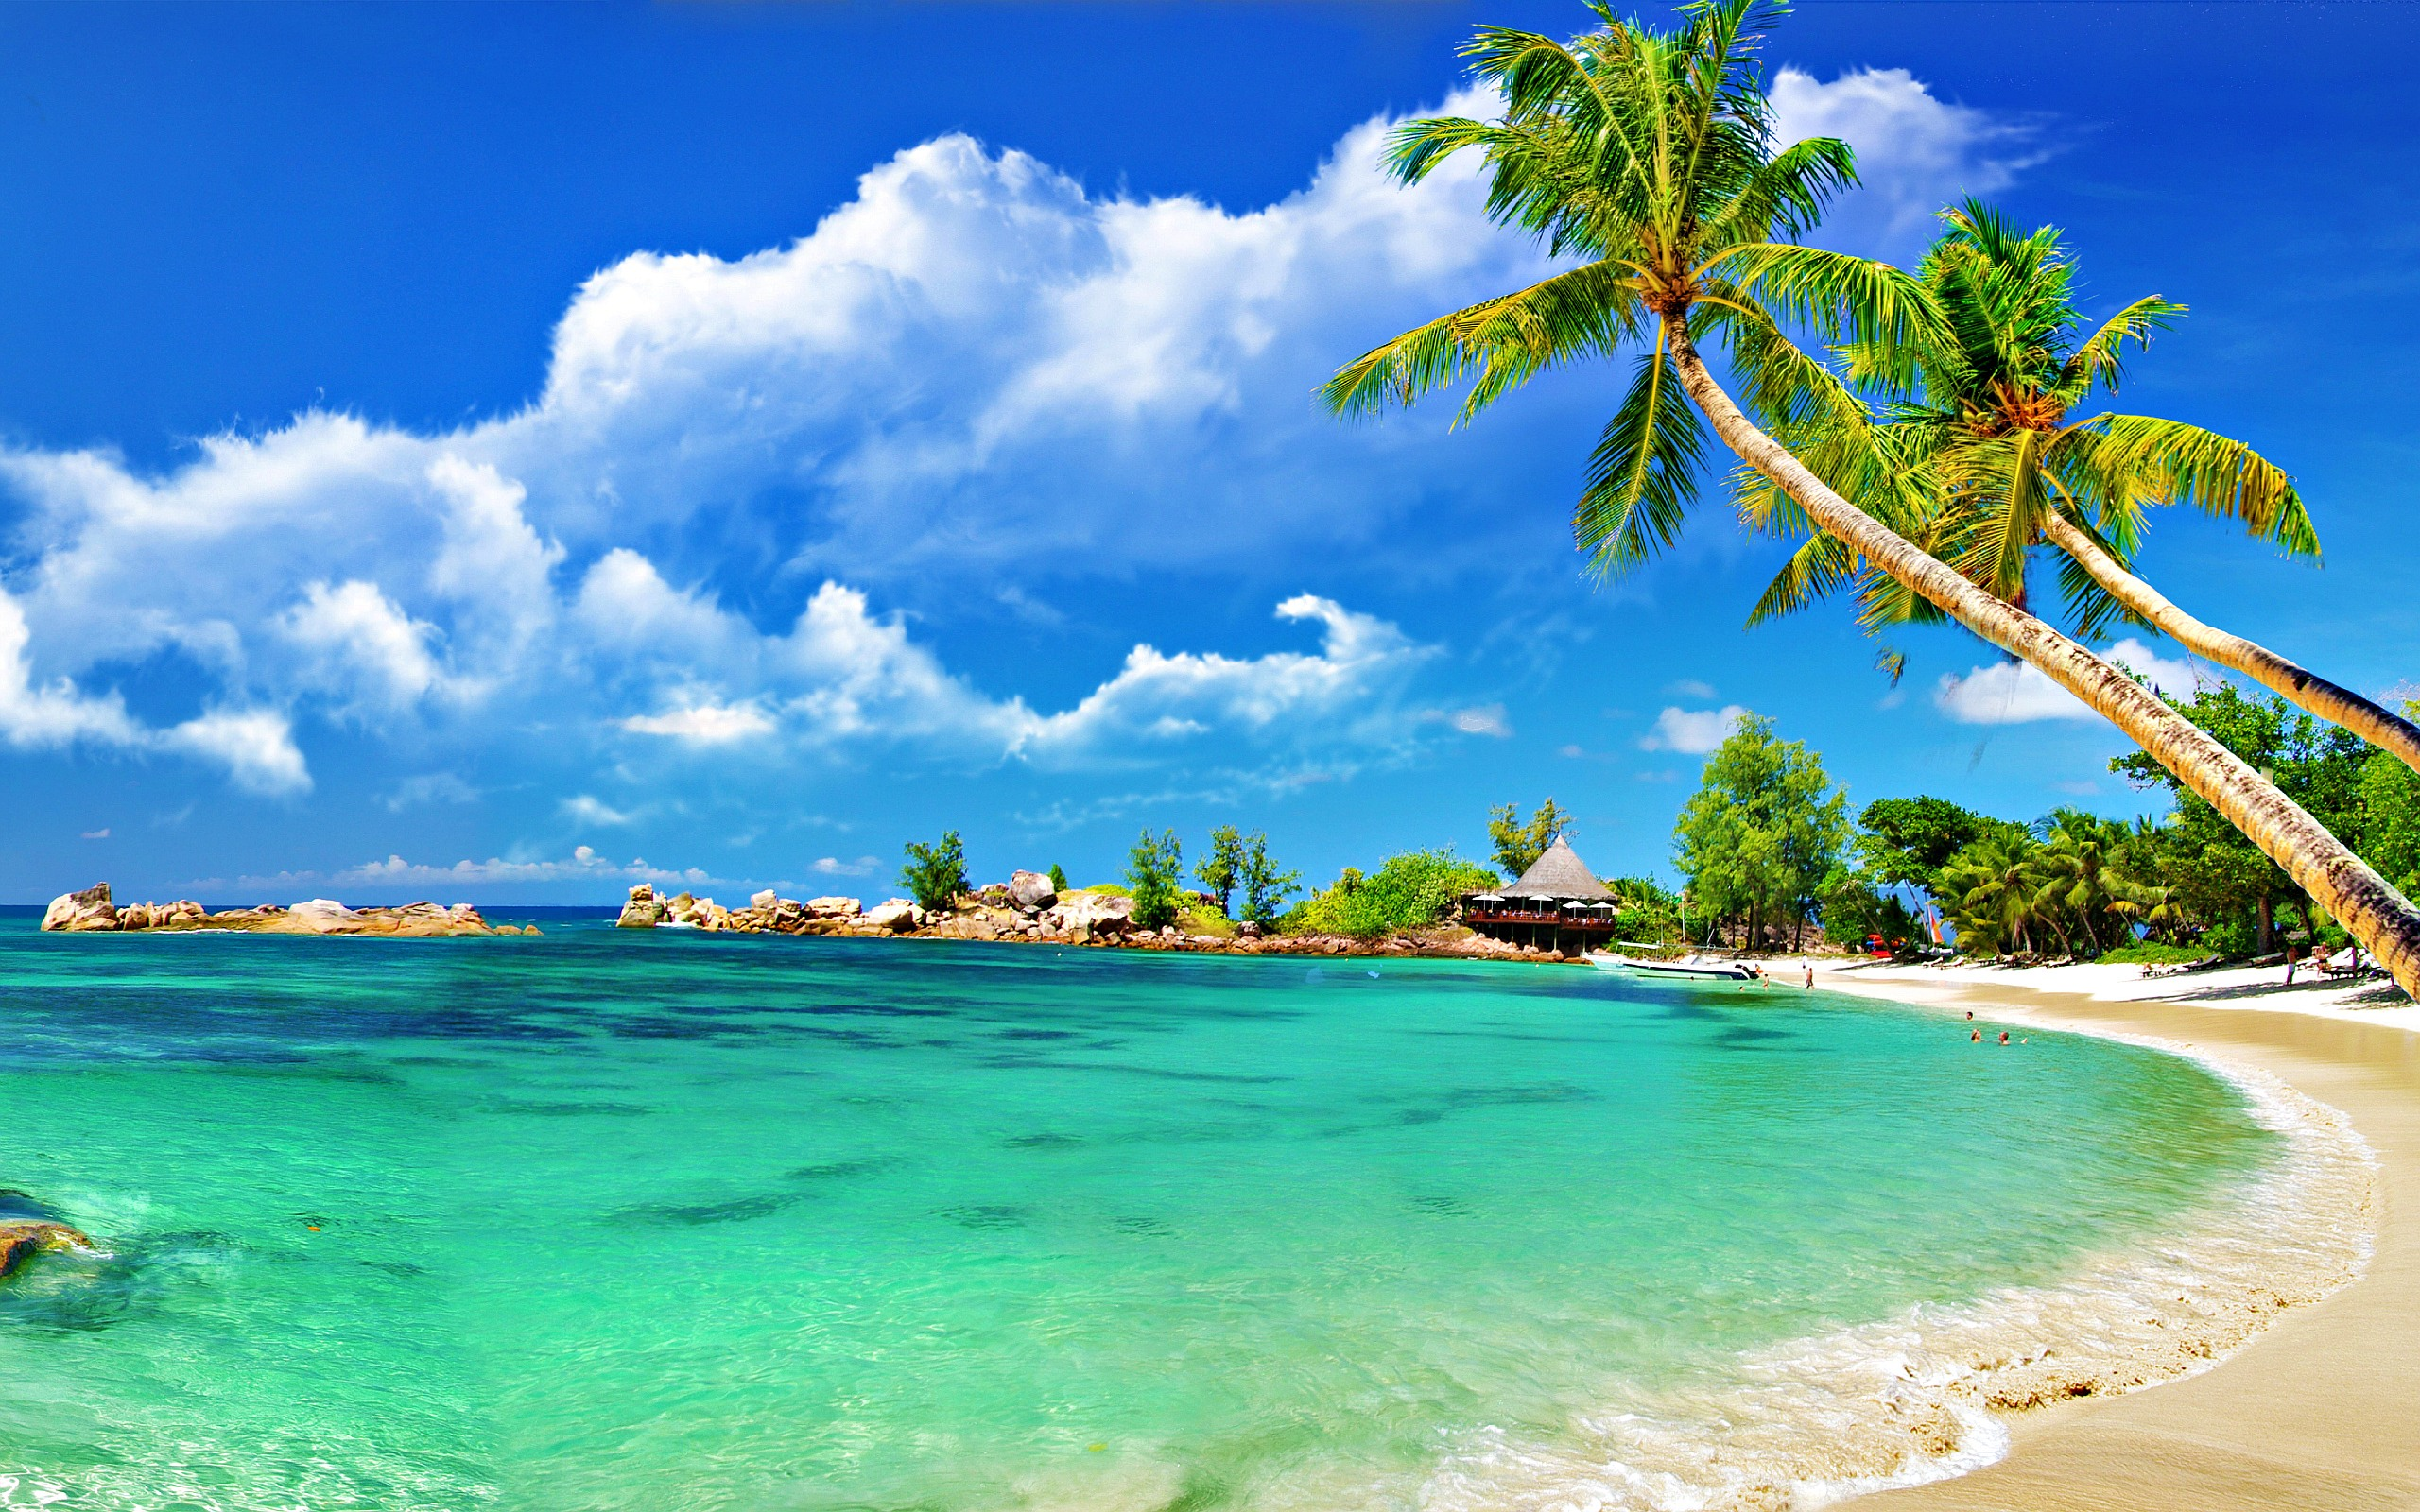 Background image beach - Beach Wallpaper Desktop